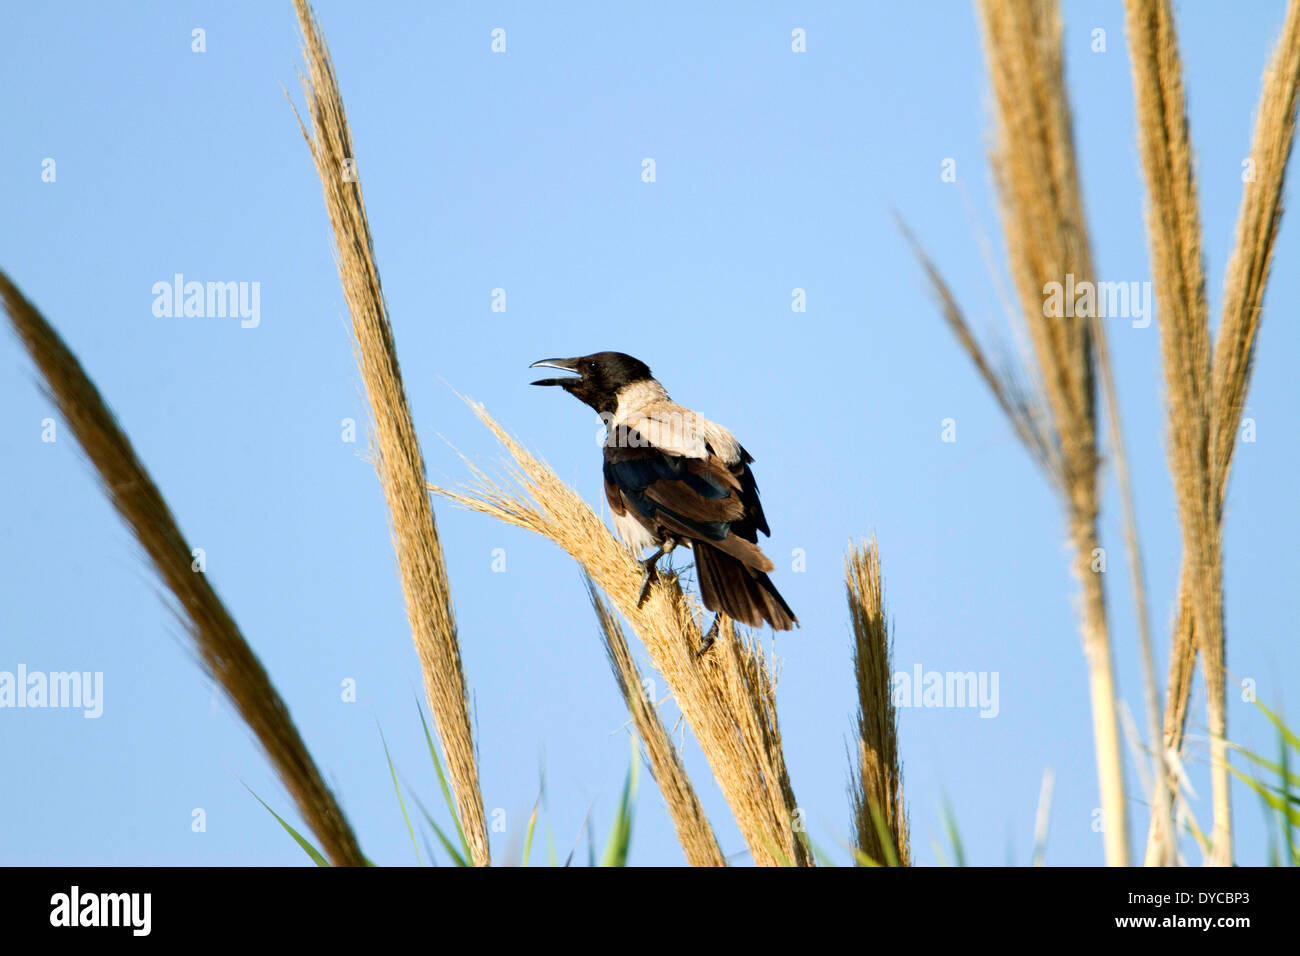 Hooded Crow calling from the top of tall grasses. Blue sky. - Stock Image